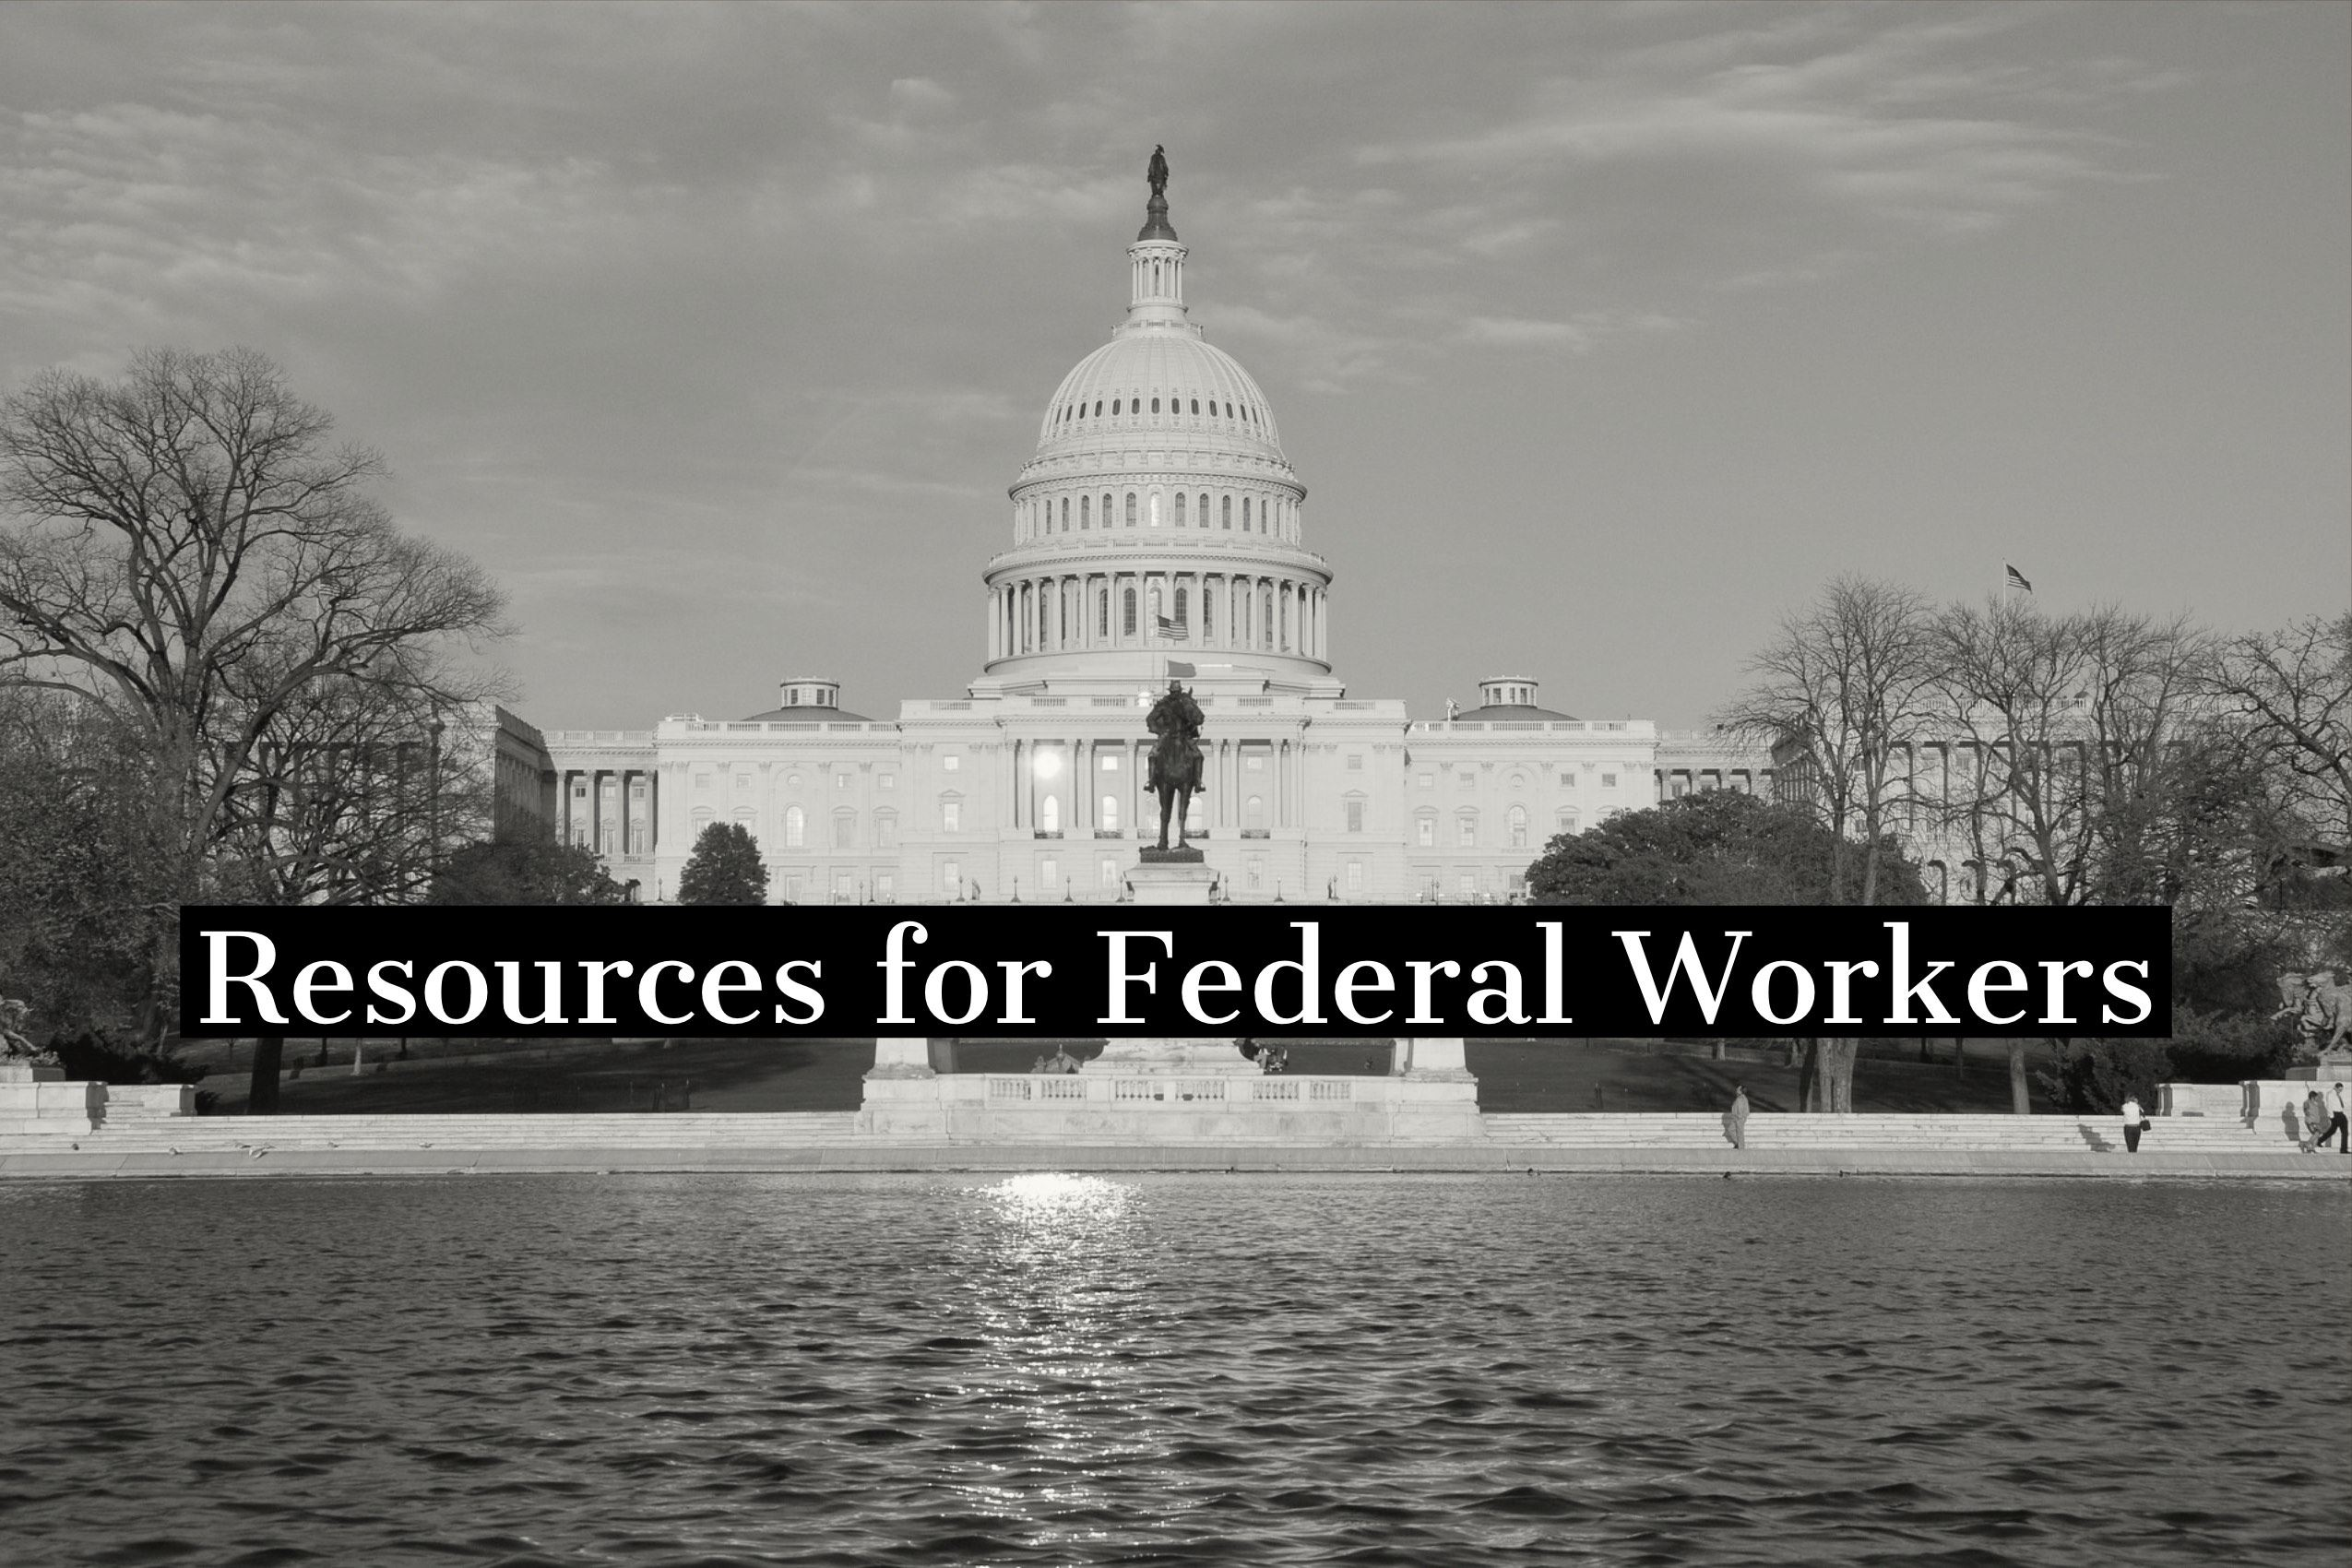 Resources for Federal Workers